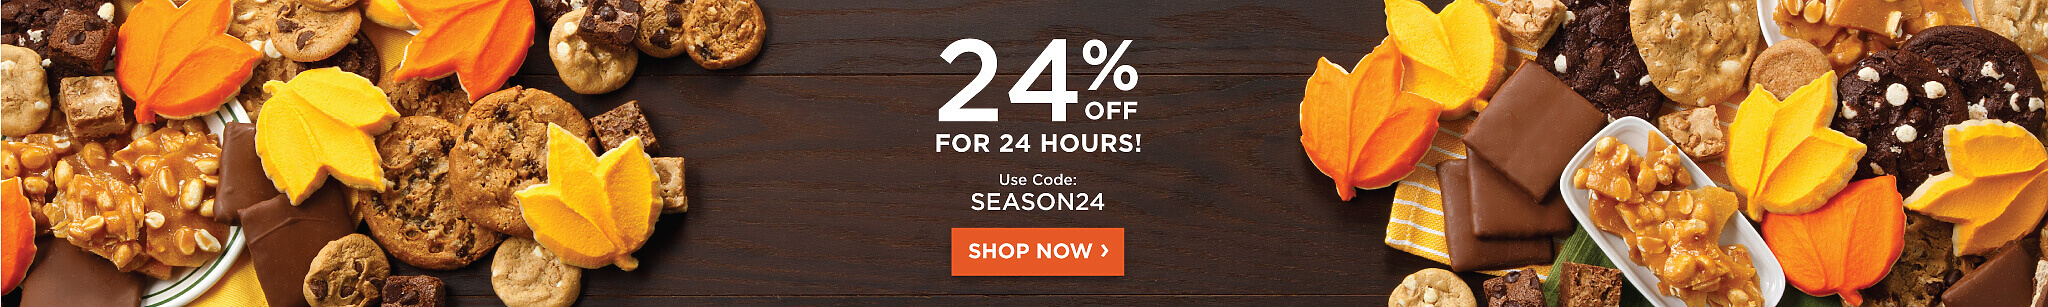 24% Off Sitewide for 24 hours with code: SEASON24